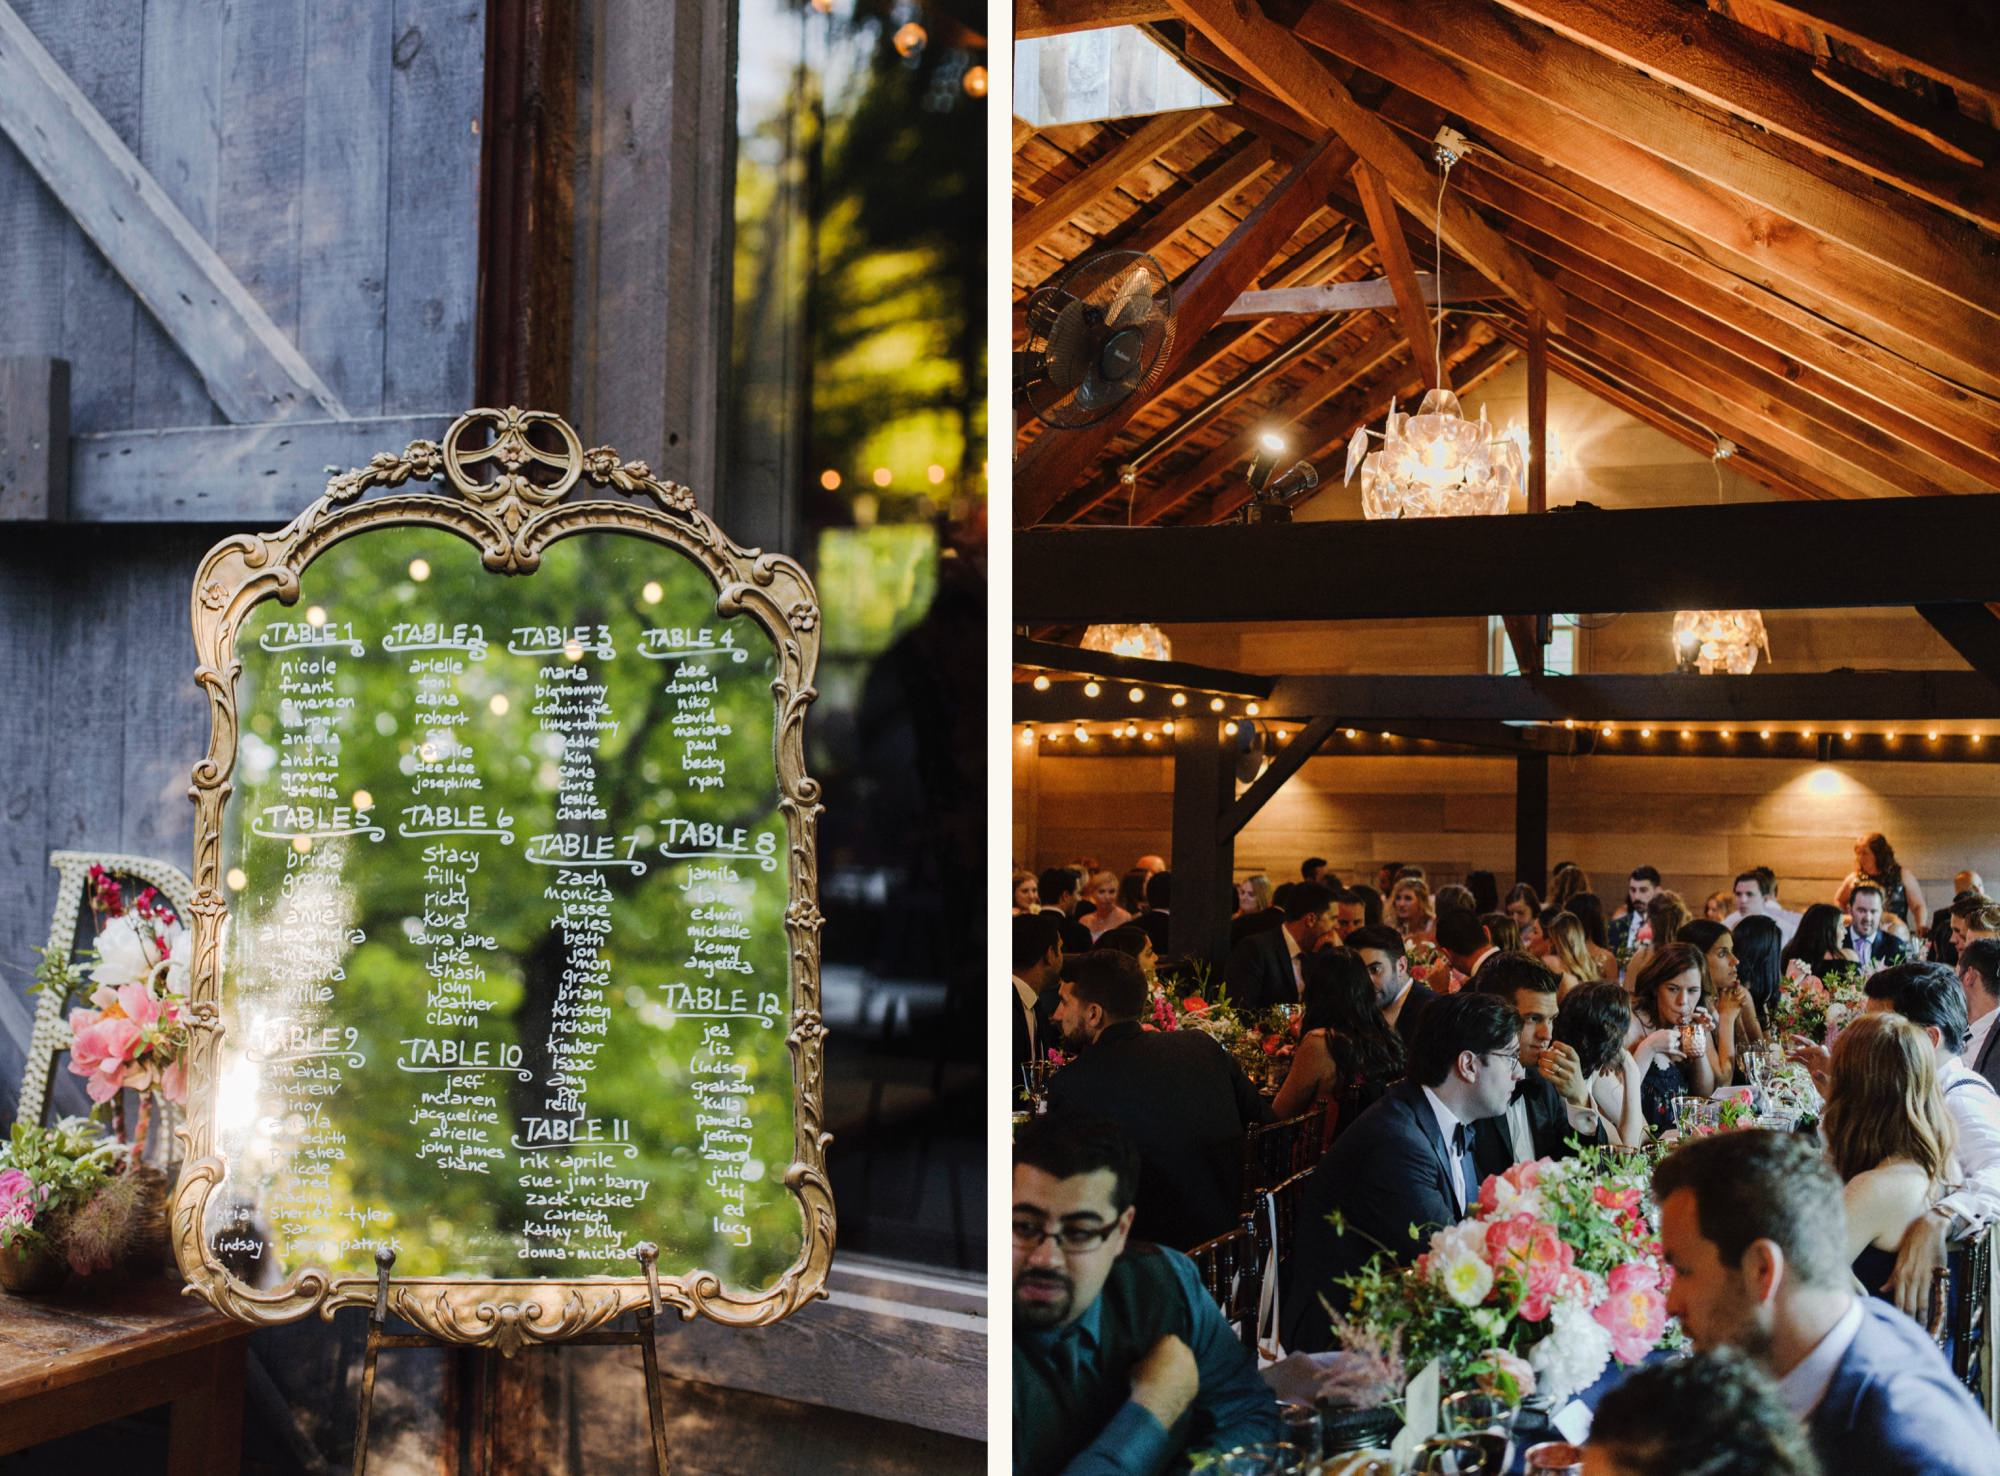 Dinner reception at The Carriage Barn at Roxbury Barn Estate in the Catskills New York